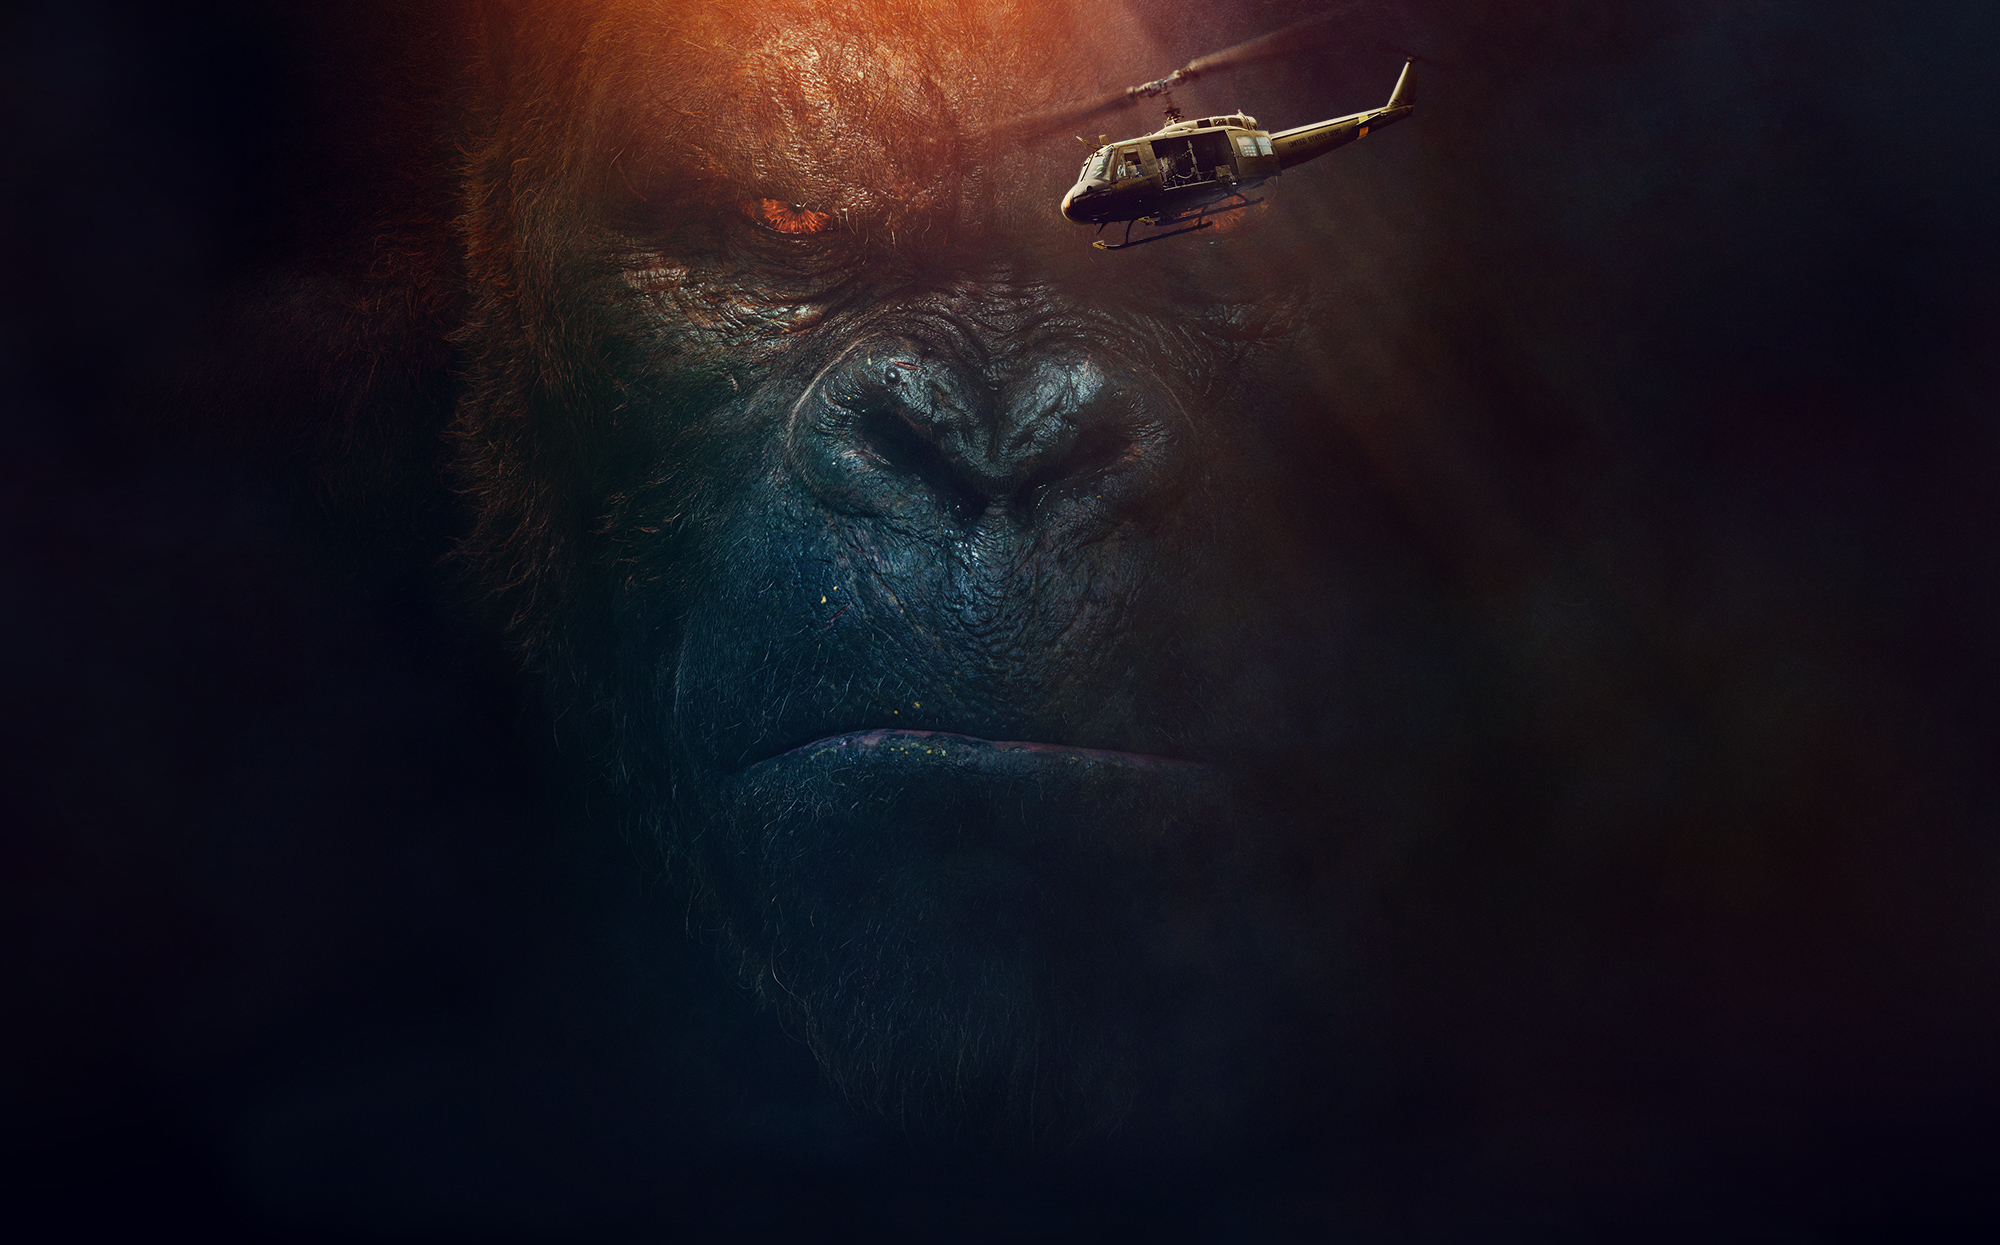 76 Gorilla Hd Wallpapers Background Images Wallpaper Abyss